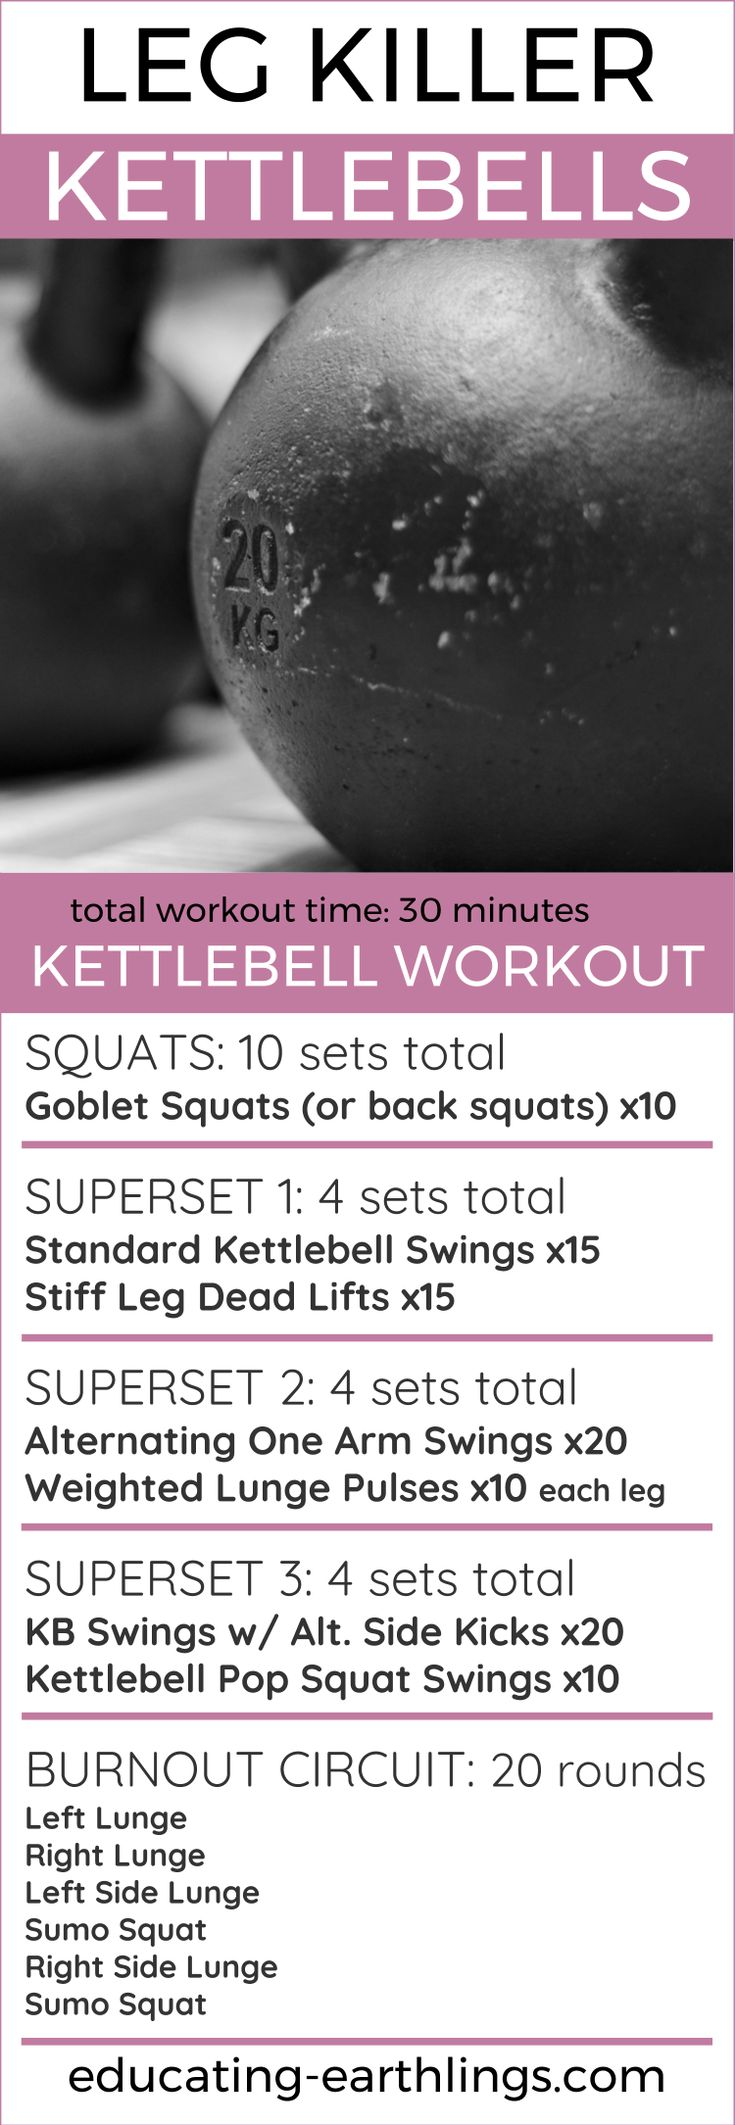 leg killer kettlebell workout, leg workout, at home workout, women's fitness, kettlebell exercises, weight loss workouts, high intensity workout, HIIT workout, HIIT kettlebell workout, HIIT leg workout, Bodyweight workouts, muscle building, bodybuilding, vegan bodybuilding - Tap the link to shop on our official online store! You can also join our affiliate and/or rewards programs for FREE!